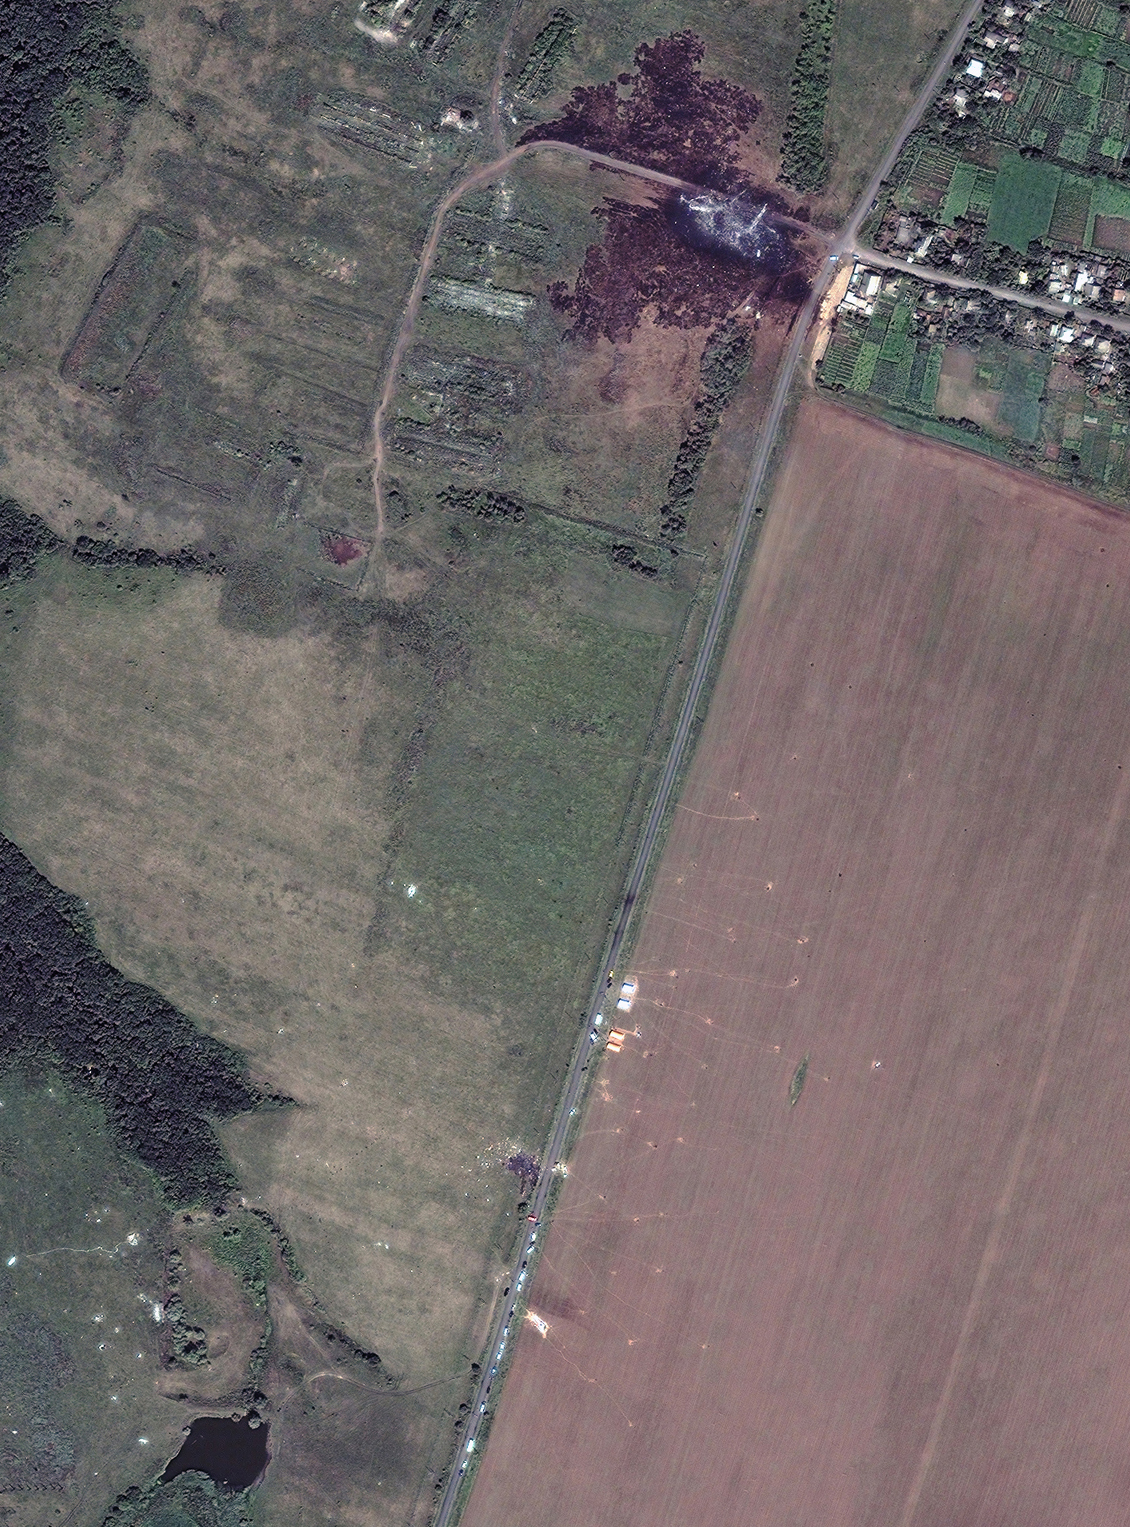 Malaysia Airlines Flight 17 crash site in eastern Ukraine, July 20, 2014.